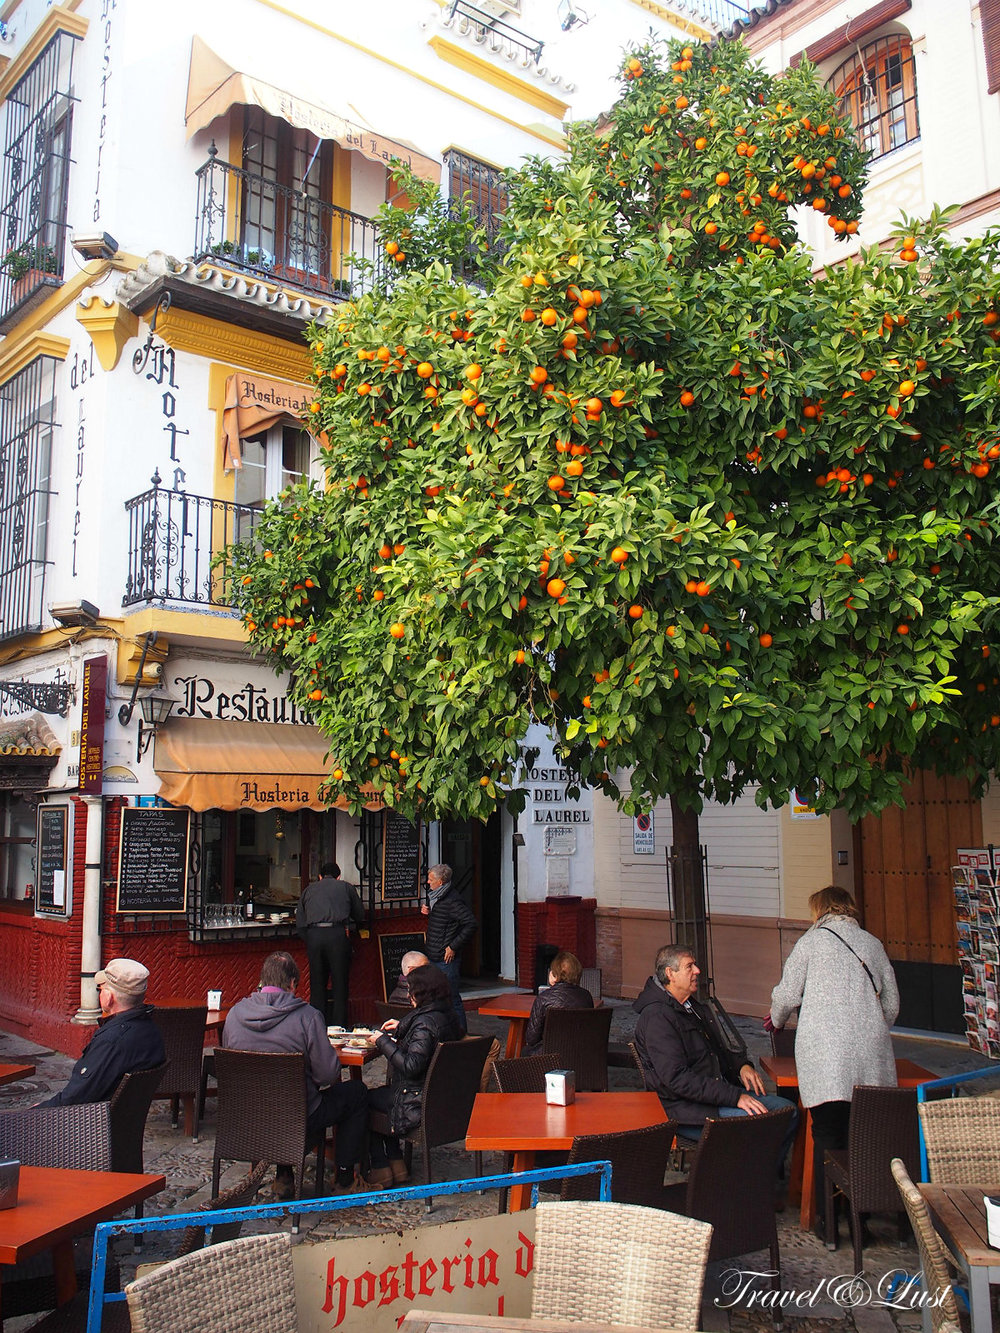 At Plaza de los Venerables nº 5 you can find the tasty in-house restaurant at Hostería Del Laurel.